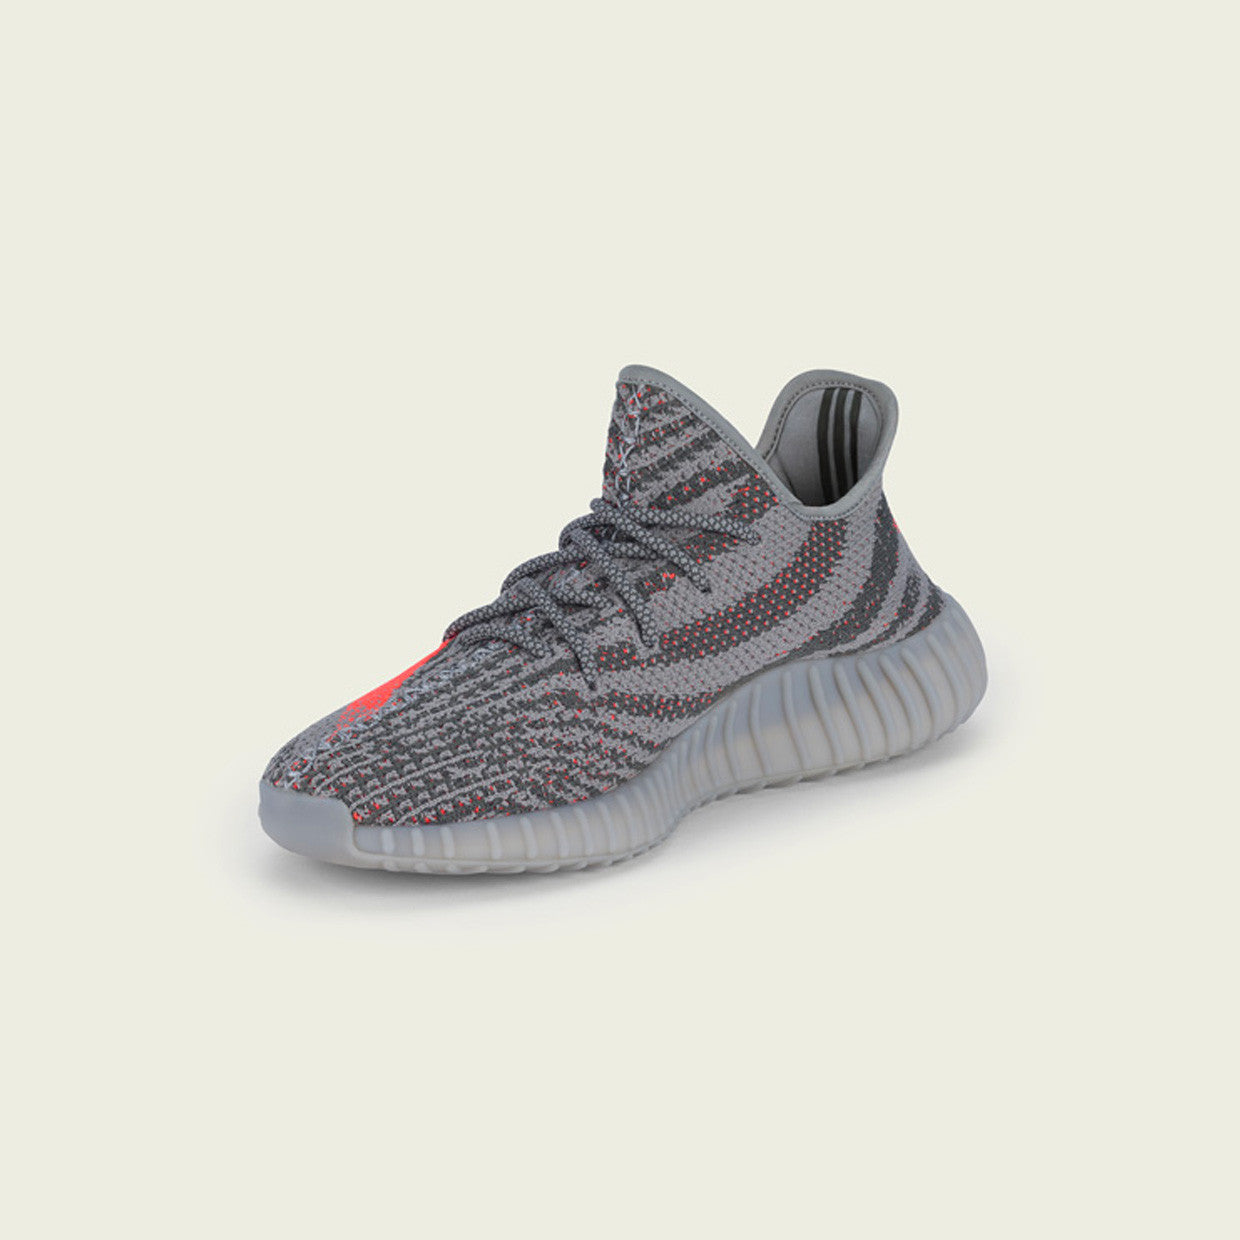 save off ea953 10818 adidas Yeezy Boost 350 V2 Steel Grey Beluga Solar Red